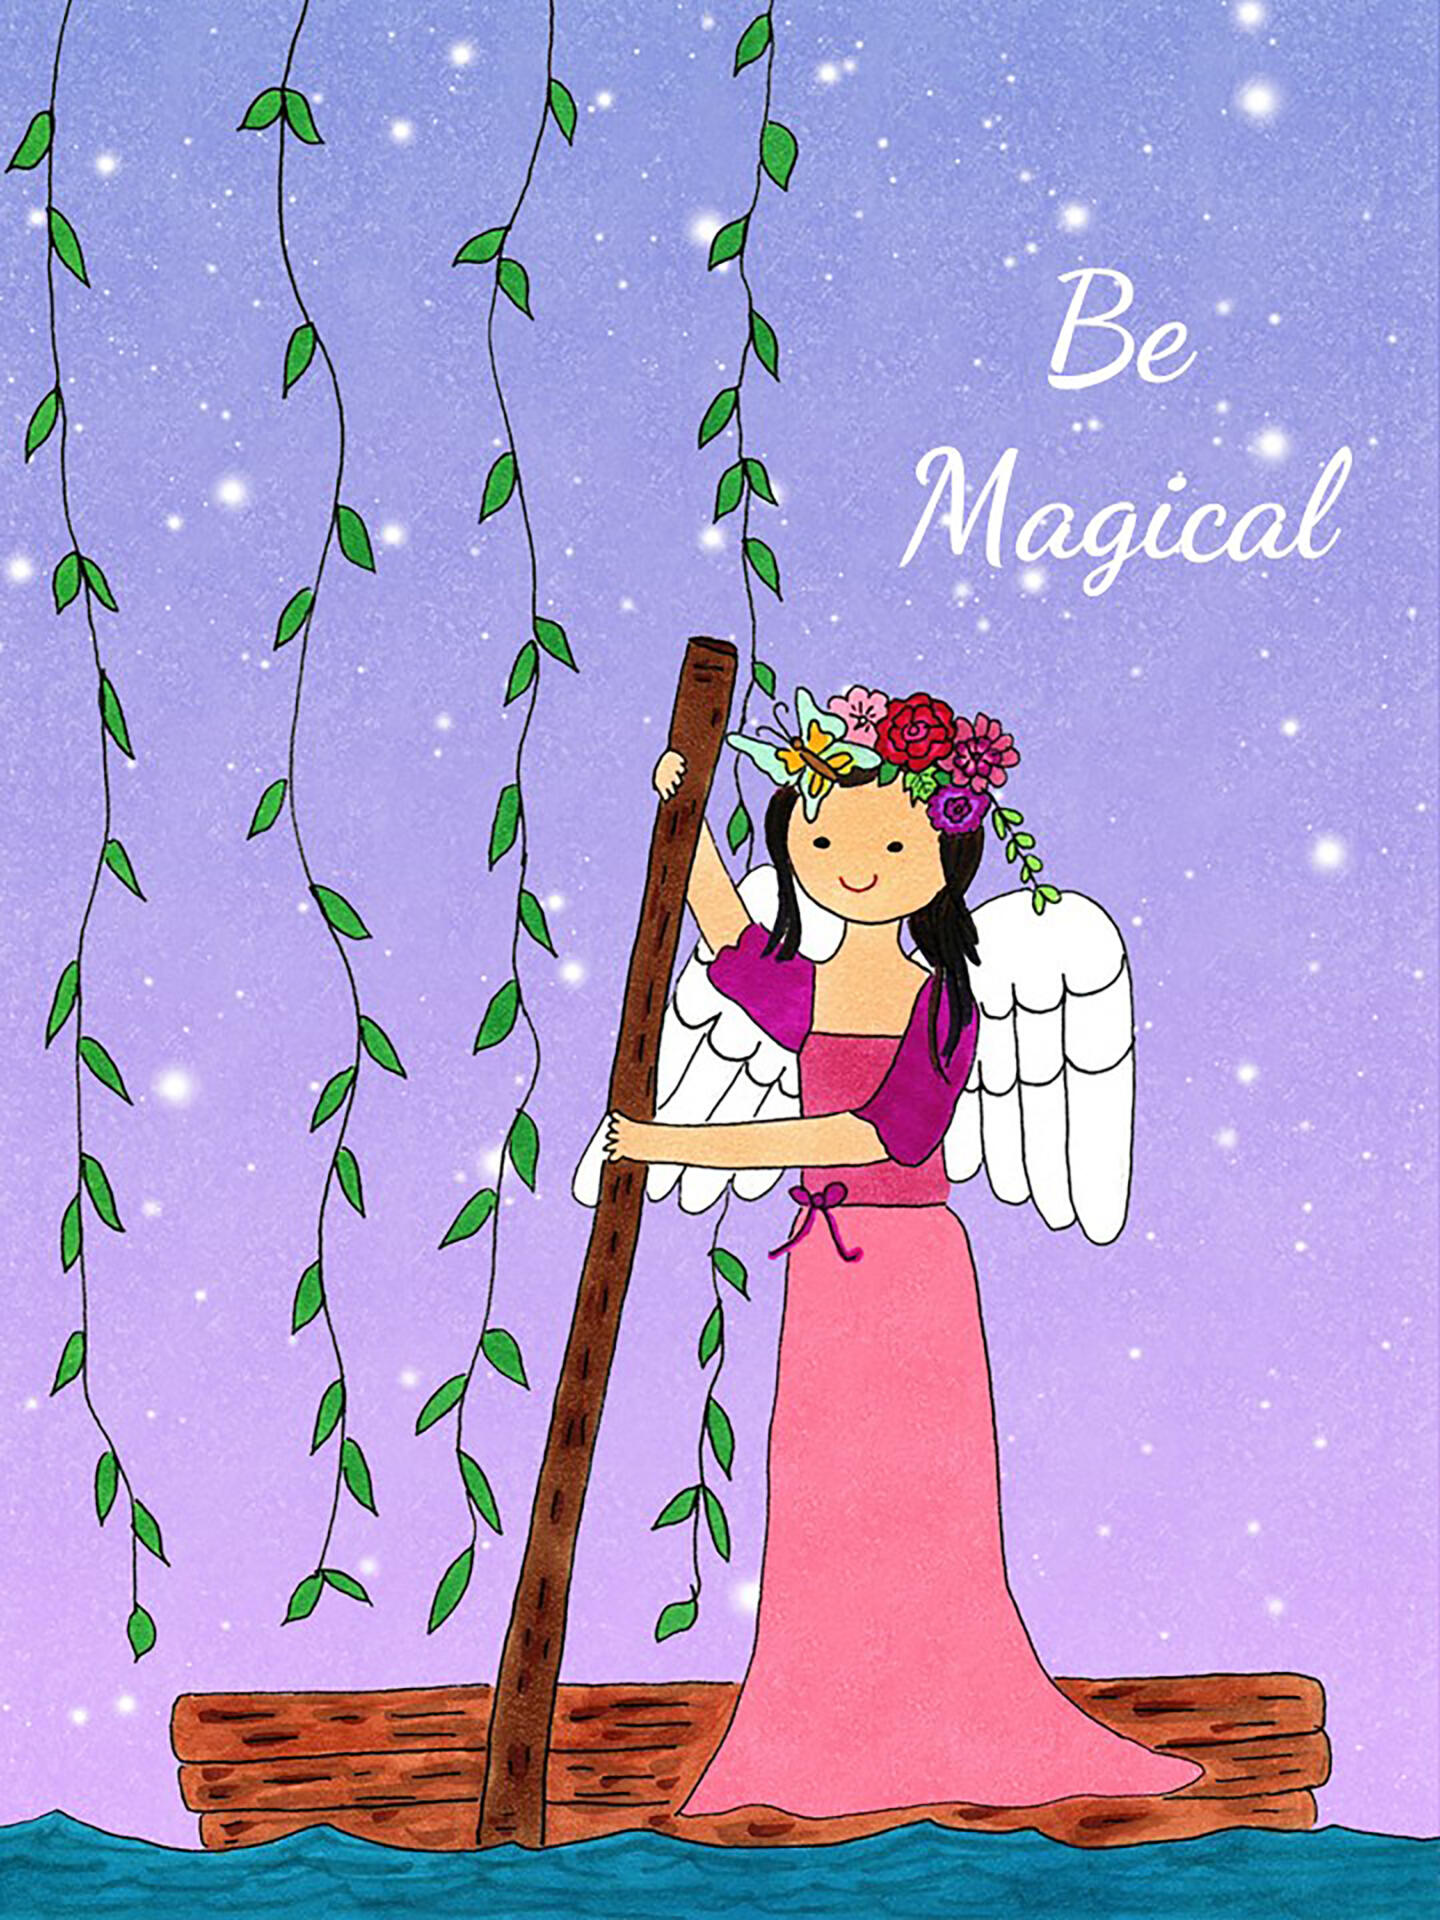 Be Magical eCard